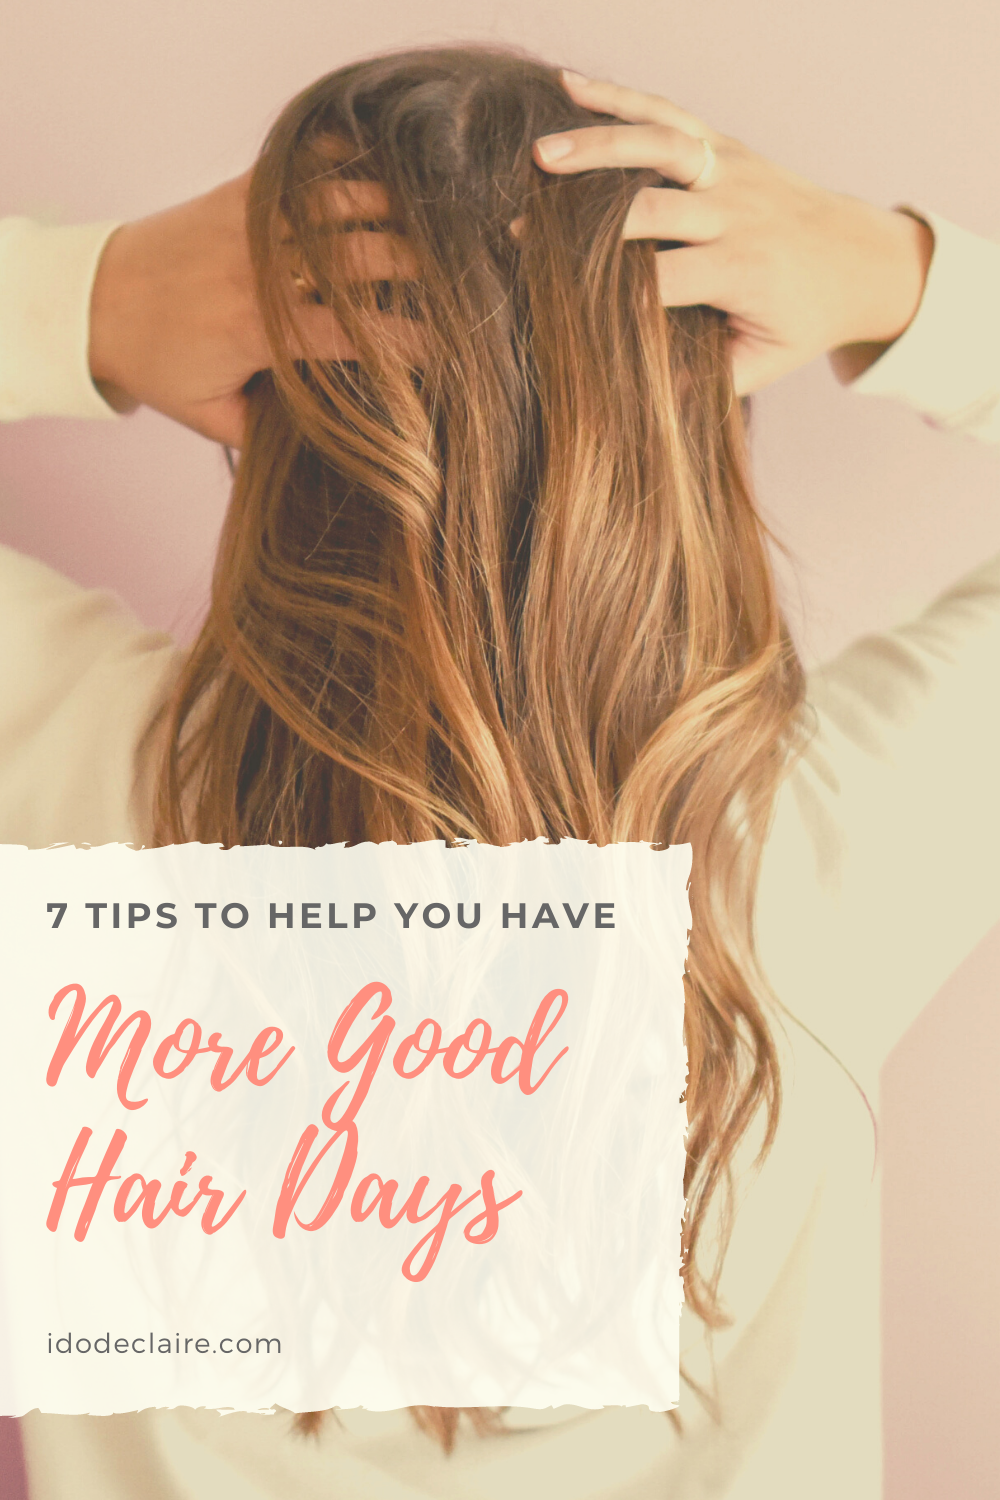 7 Tips to Help You Have More Good Hair Days